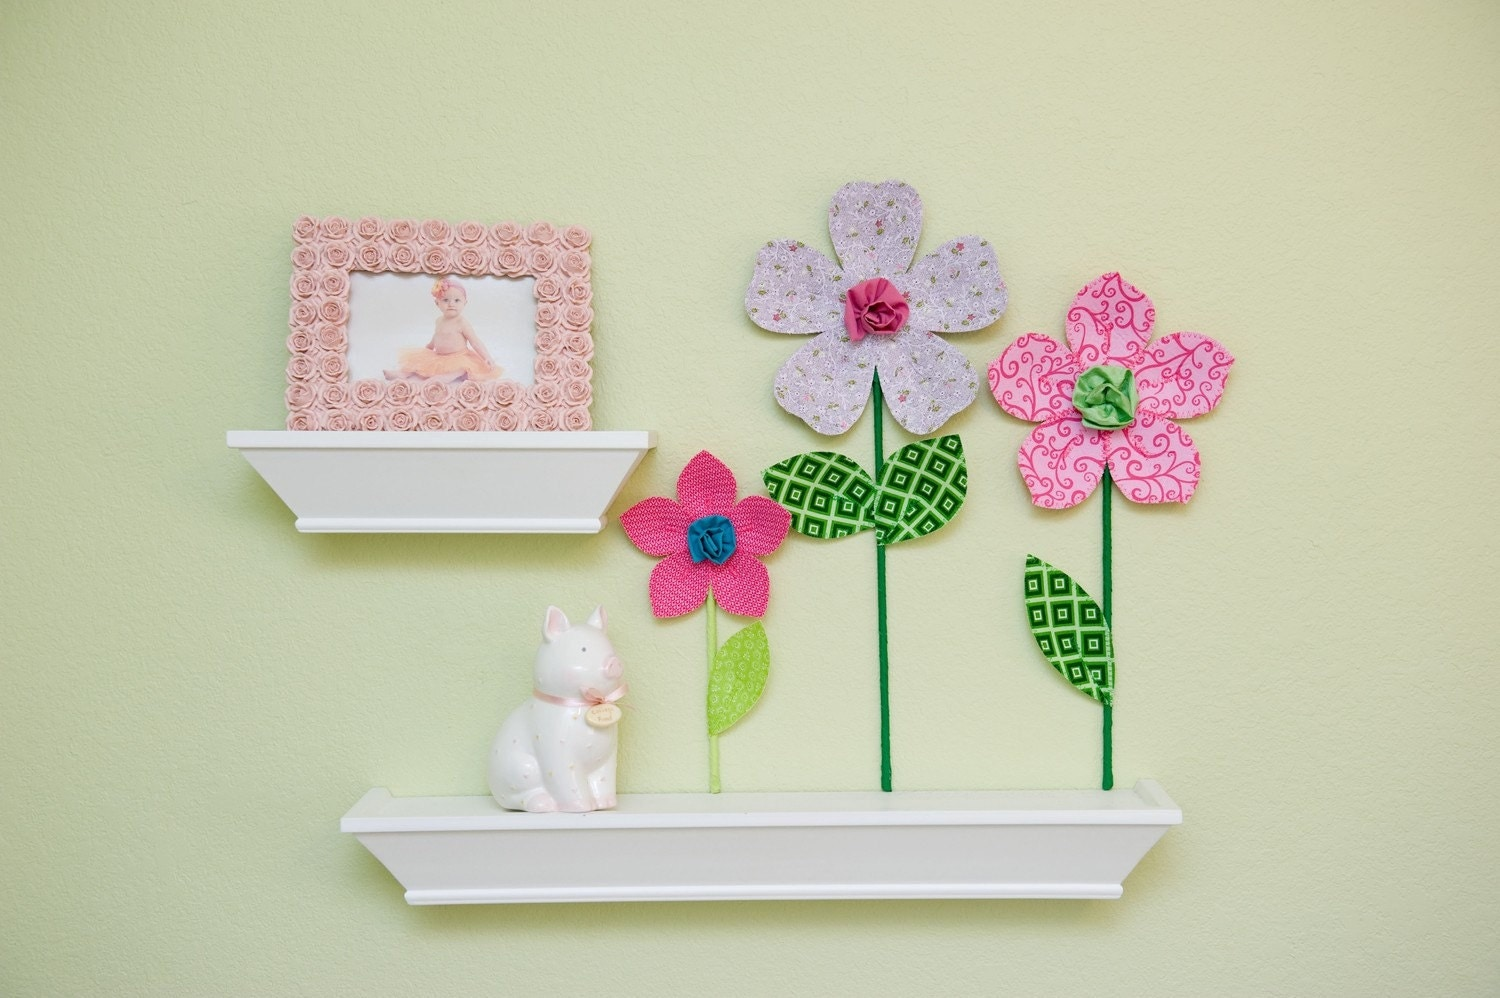 fabric wall flower. 3d wall decor. valentine's day. pink. scrolls